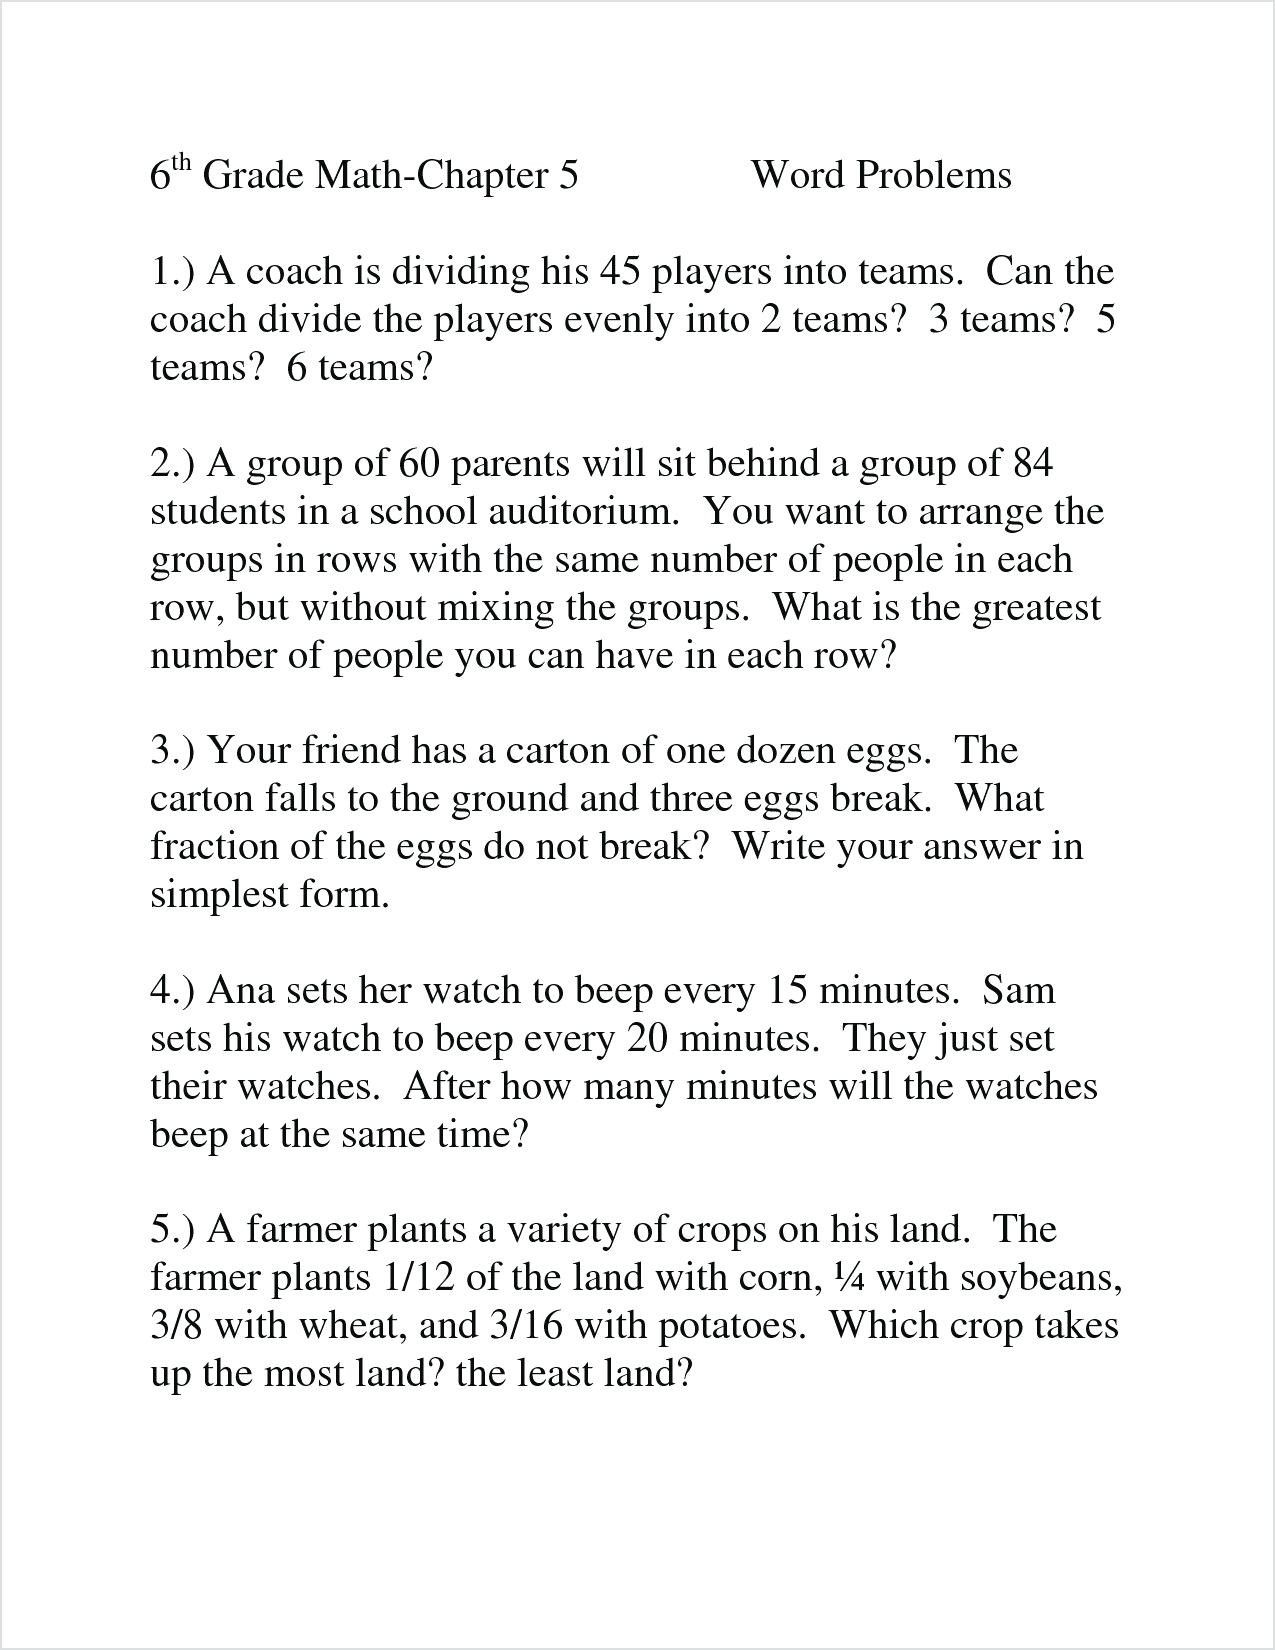 3 Free Math Worksheets Third Grade 3 Division Word Problems Learning Grade 5 Math Word Proble Math Word Problems Word Problem Worksheets Division Word Problems [ 1650 x 1275 Pixel ]